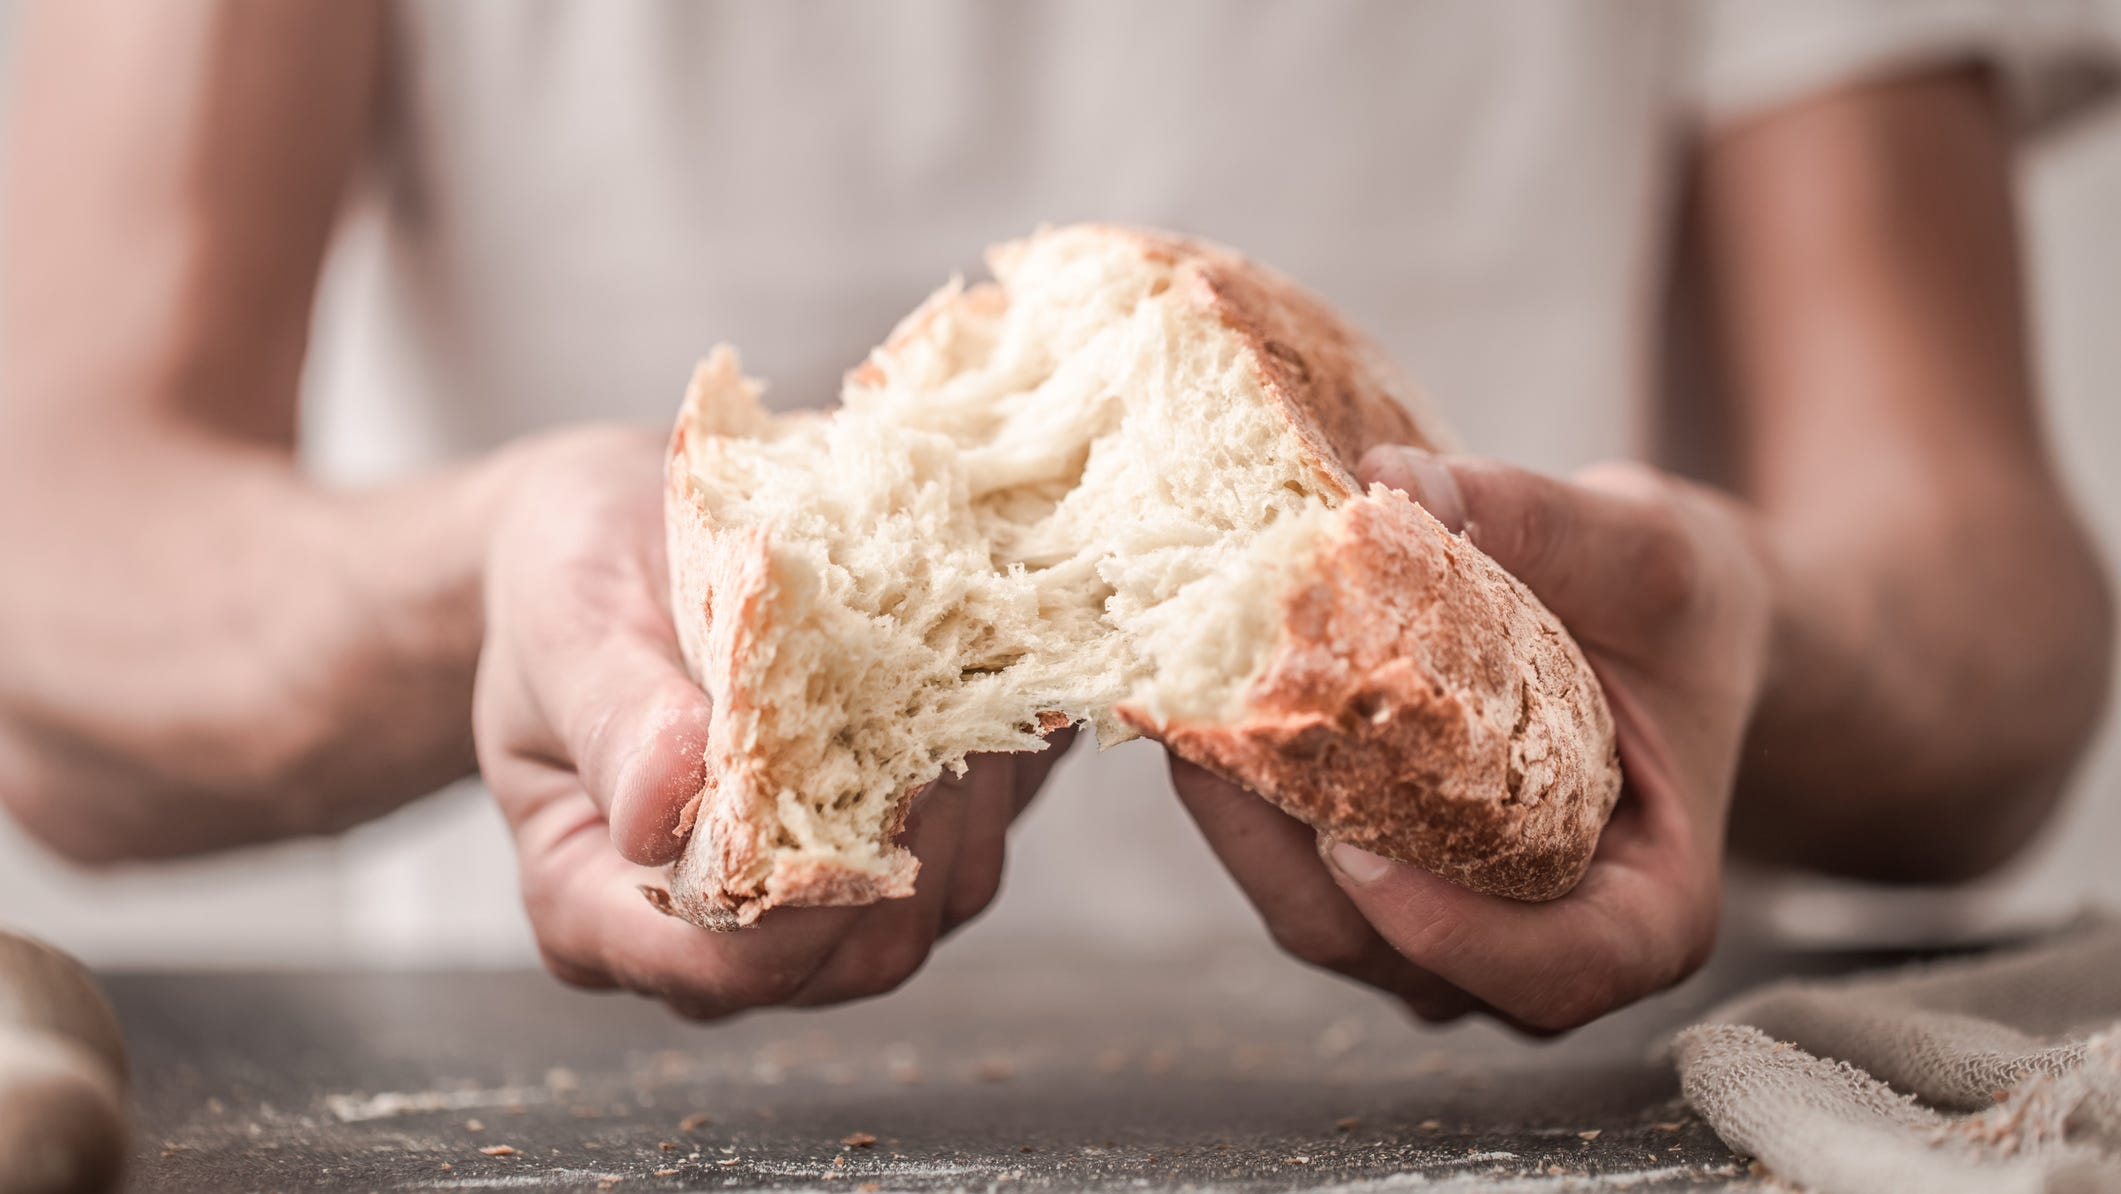 This trick can revive stale bread in 5 minutes flat